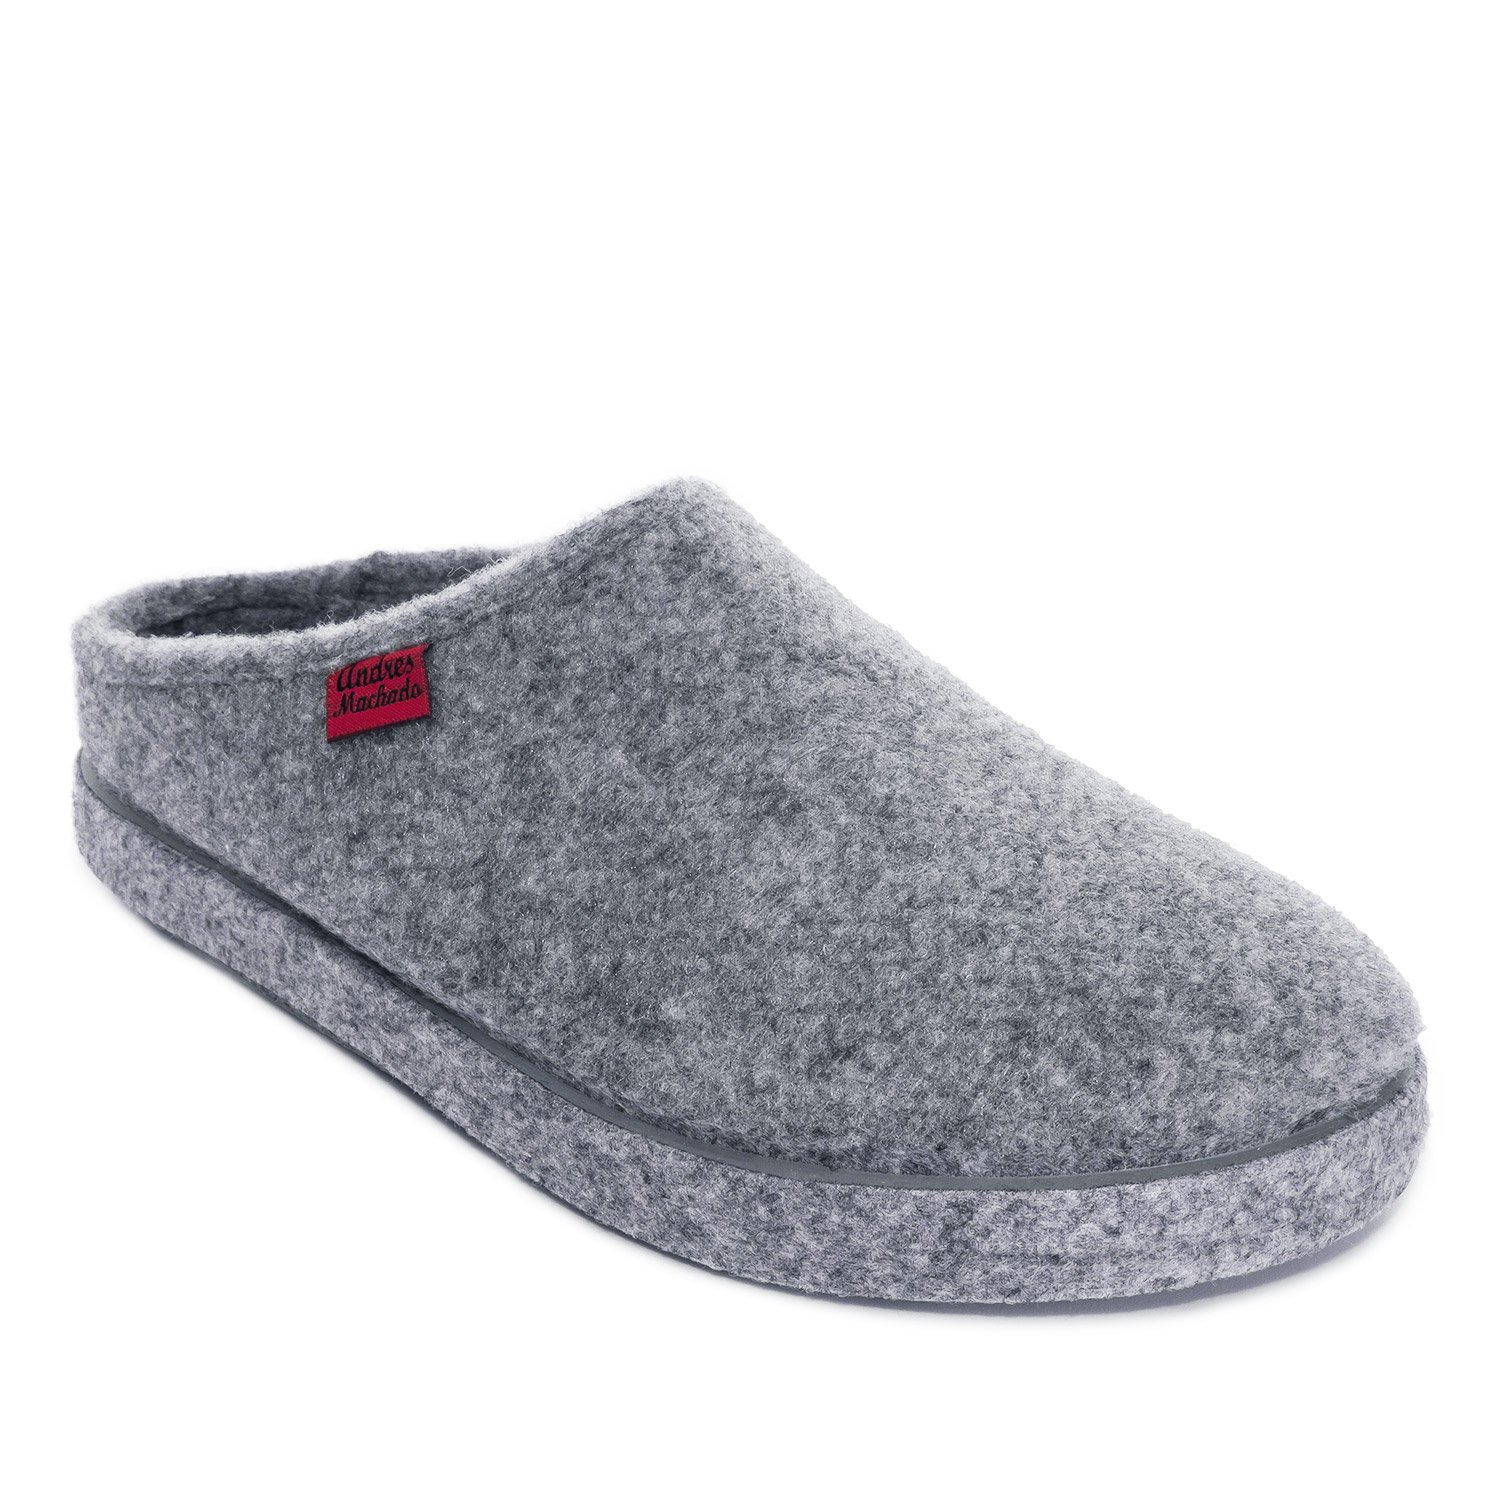 Mens Bedroom Slippers Amazoncouk Best Sellers The Most Popular Items In Mens Slippers